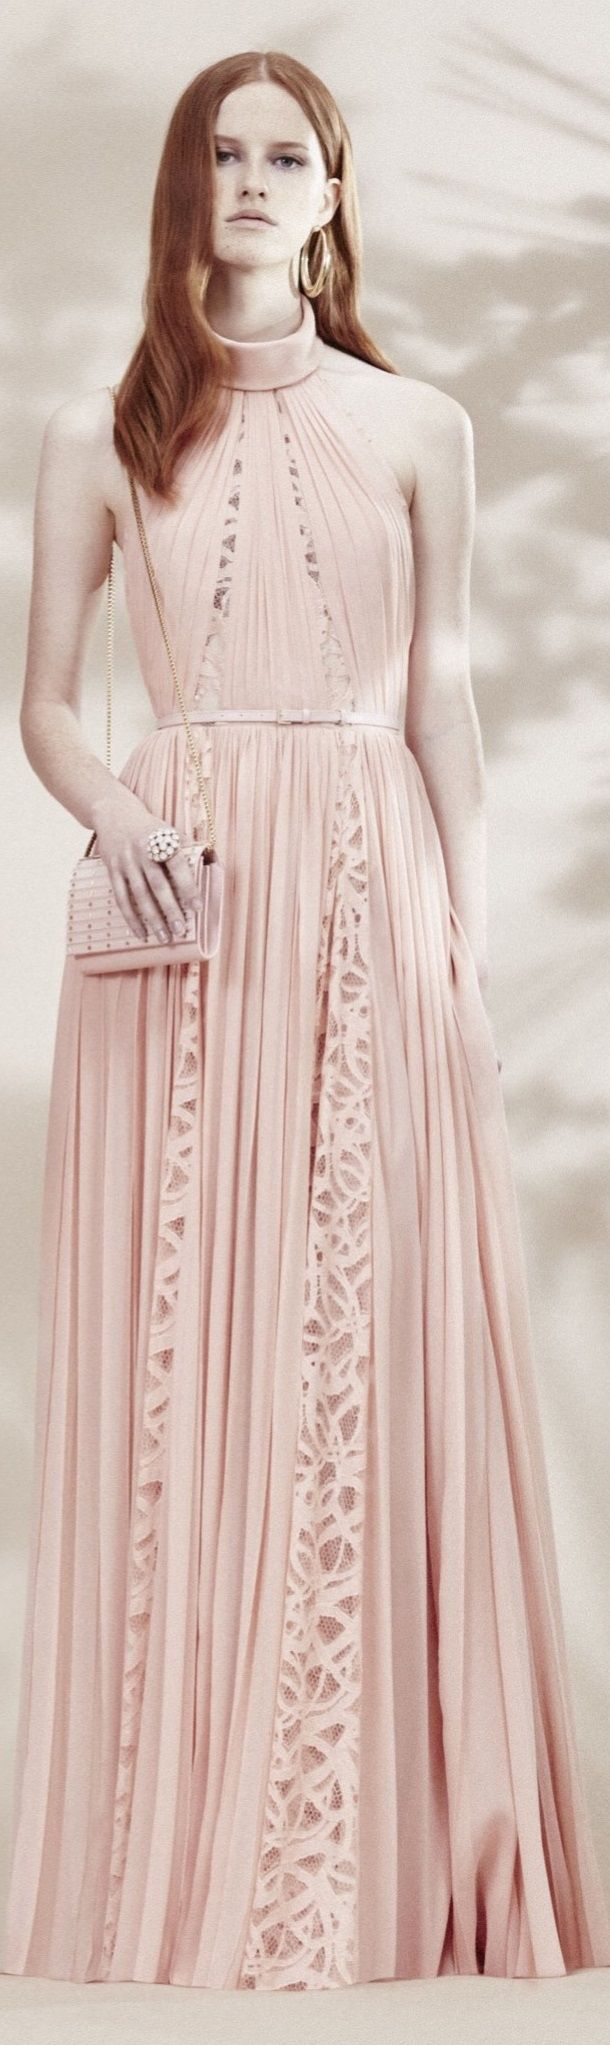 best pastels so soft images on pinterest beautiful shoes and